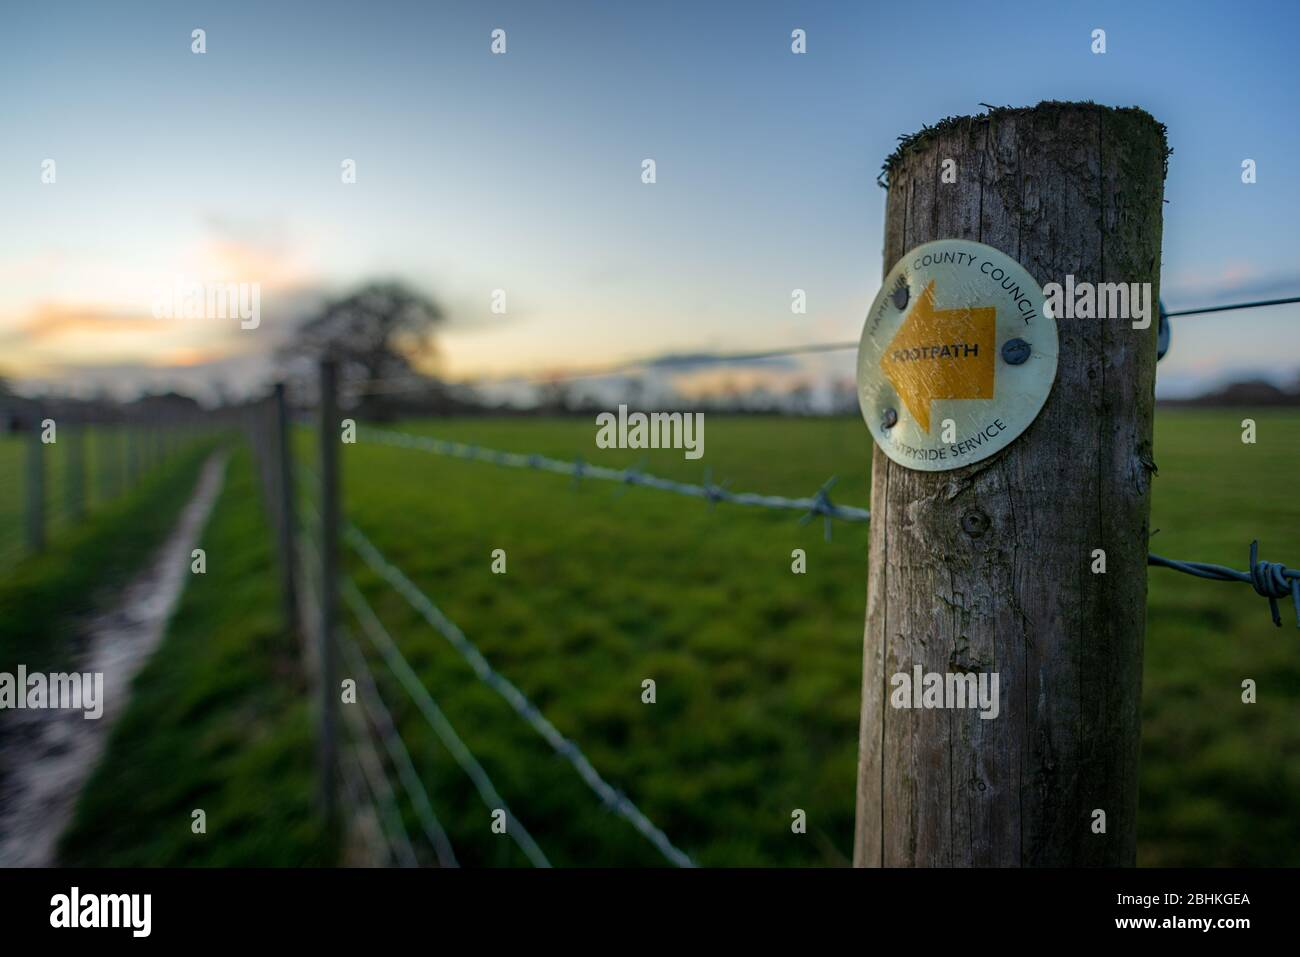 County Council and Countryside Service sign on a wooden post on a footpath in evening light, Hampshire, UK Stock Photo